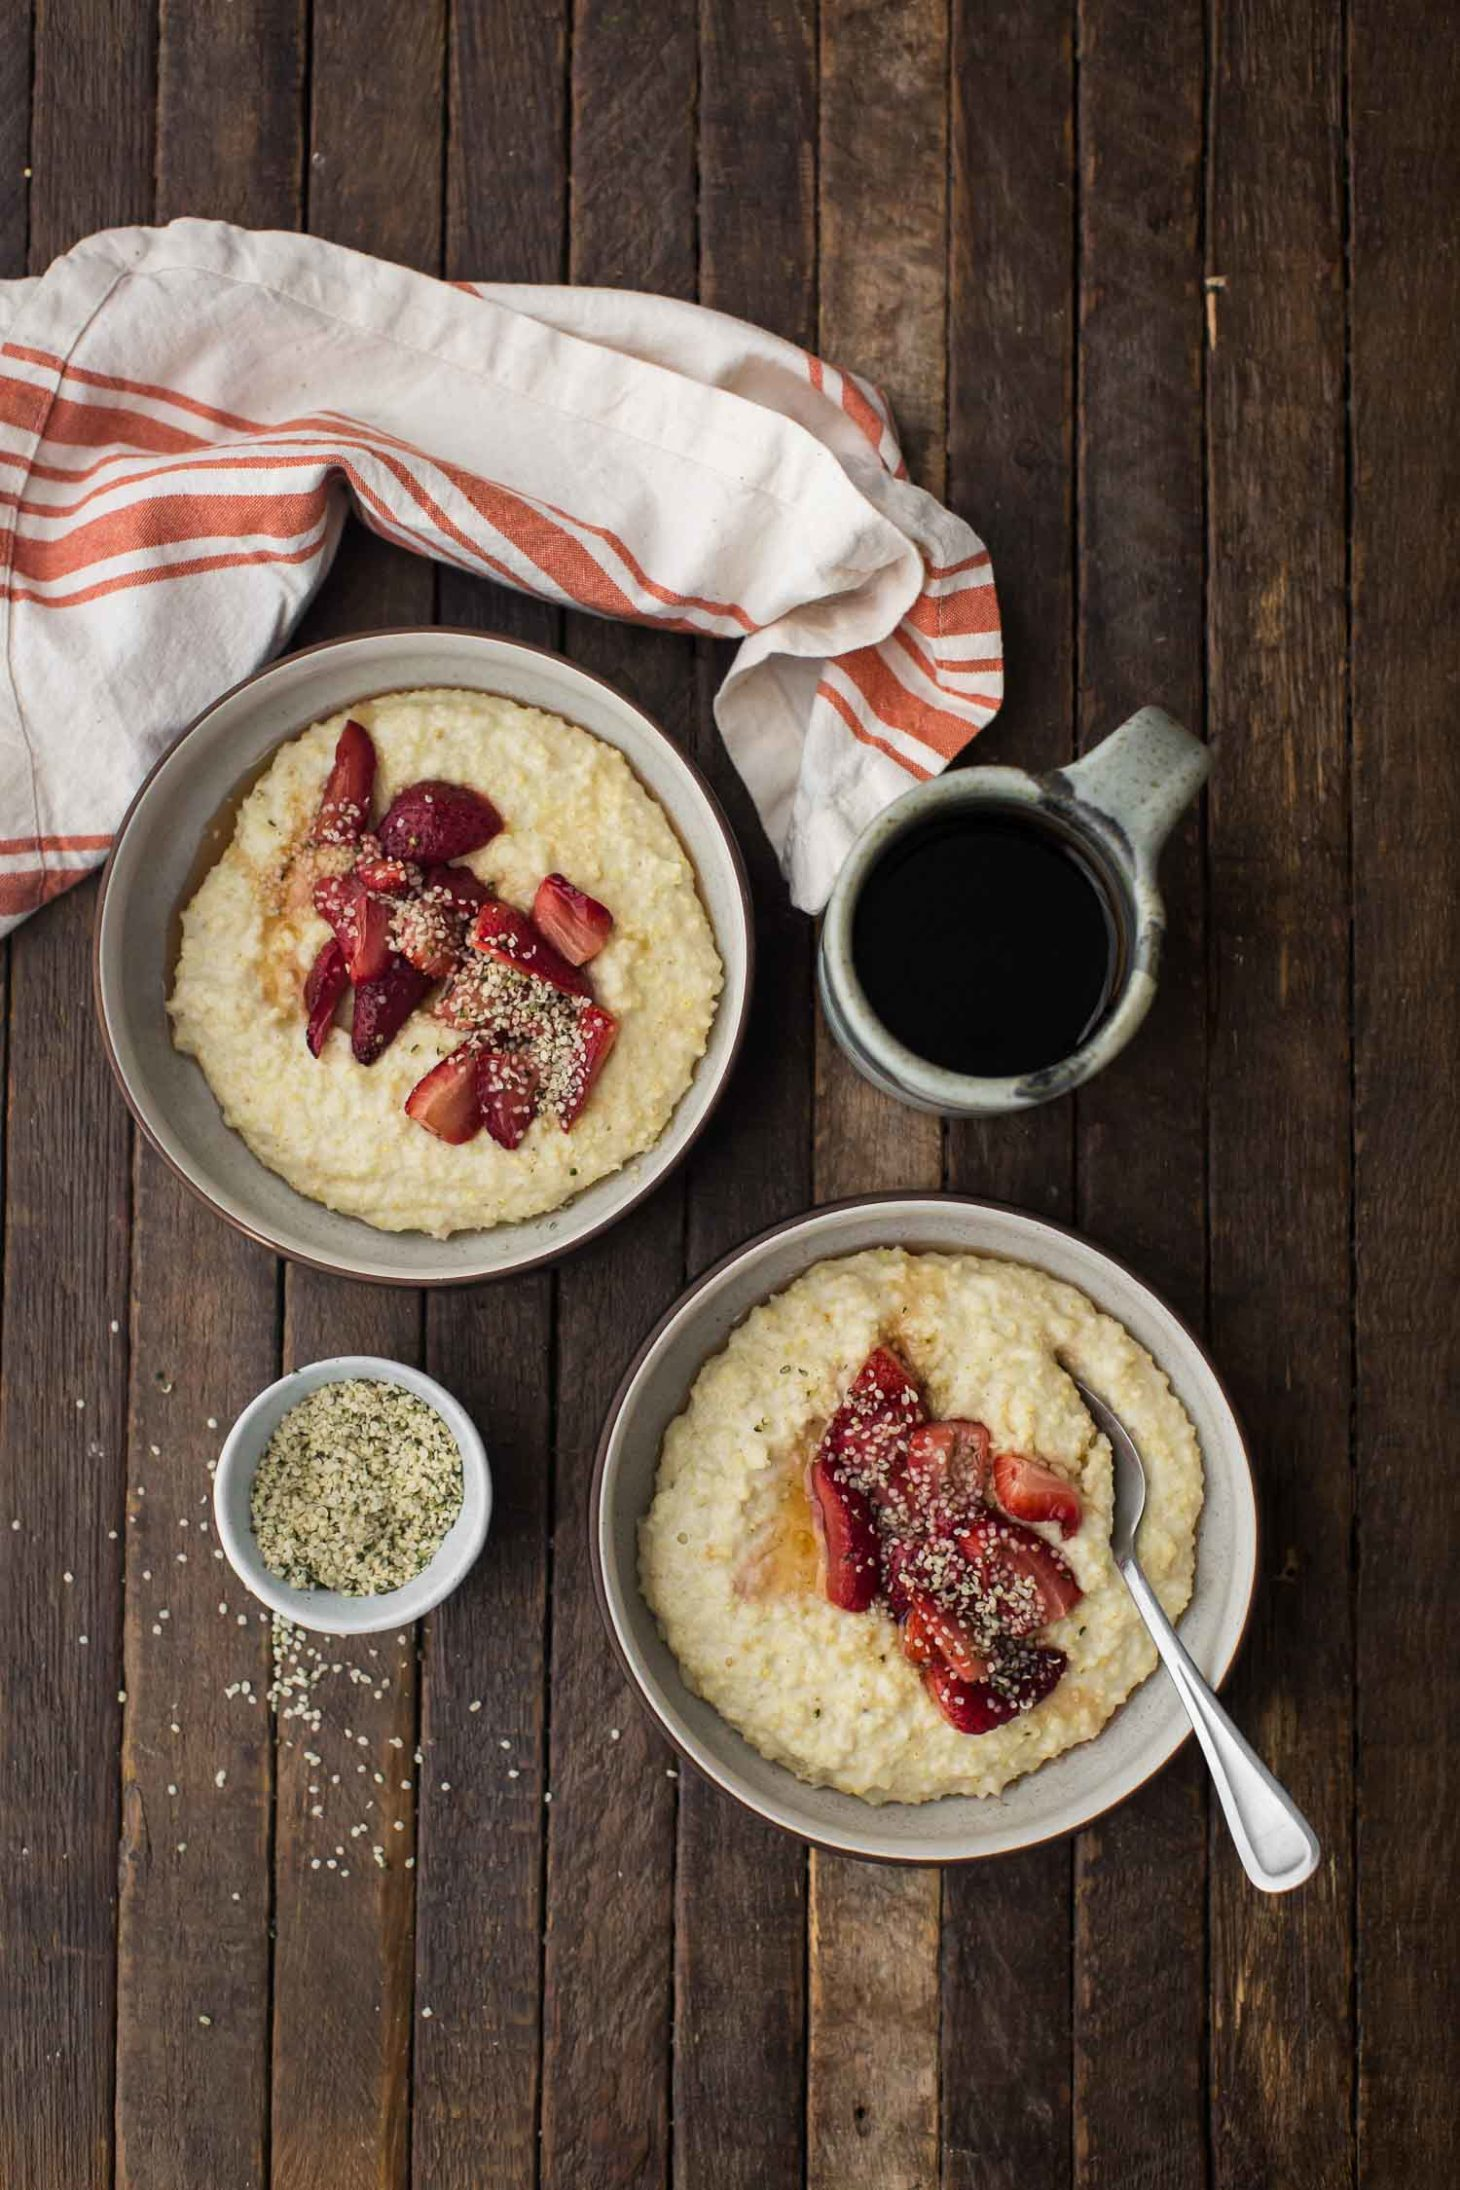 Creamy Millet Porridge with Roasted Strawberries and Hemp Seeds | Naturally Ella